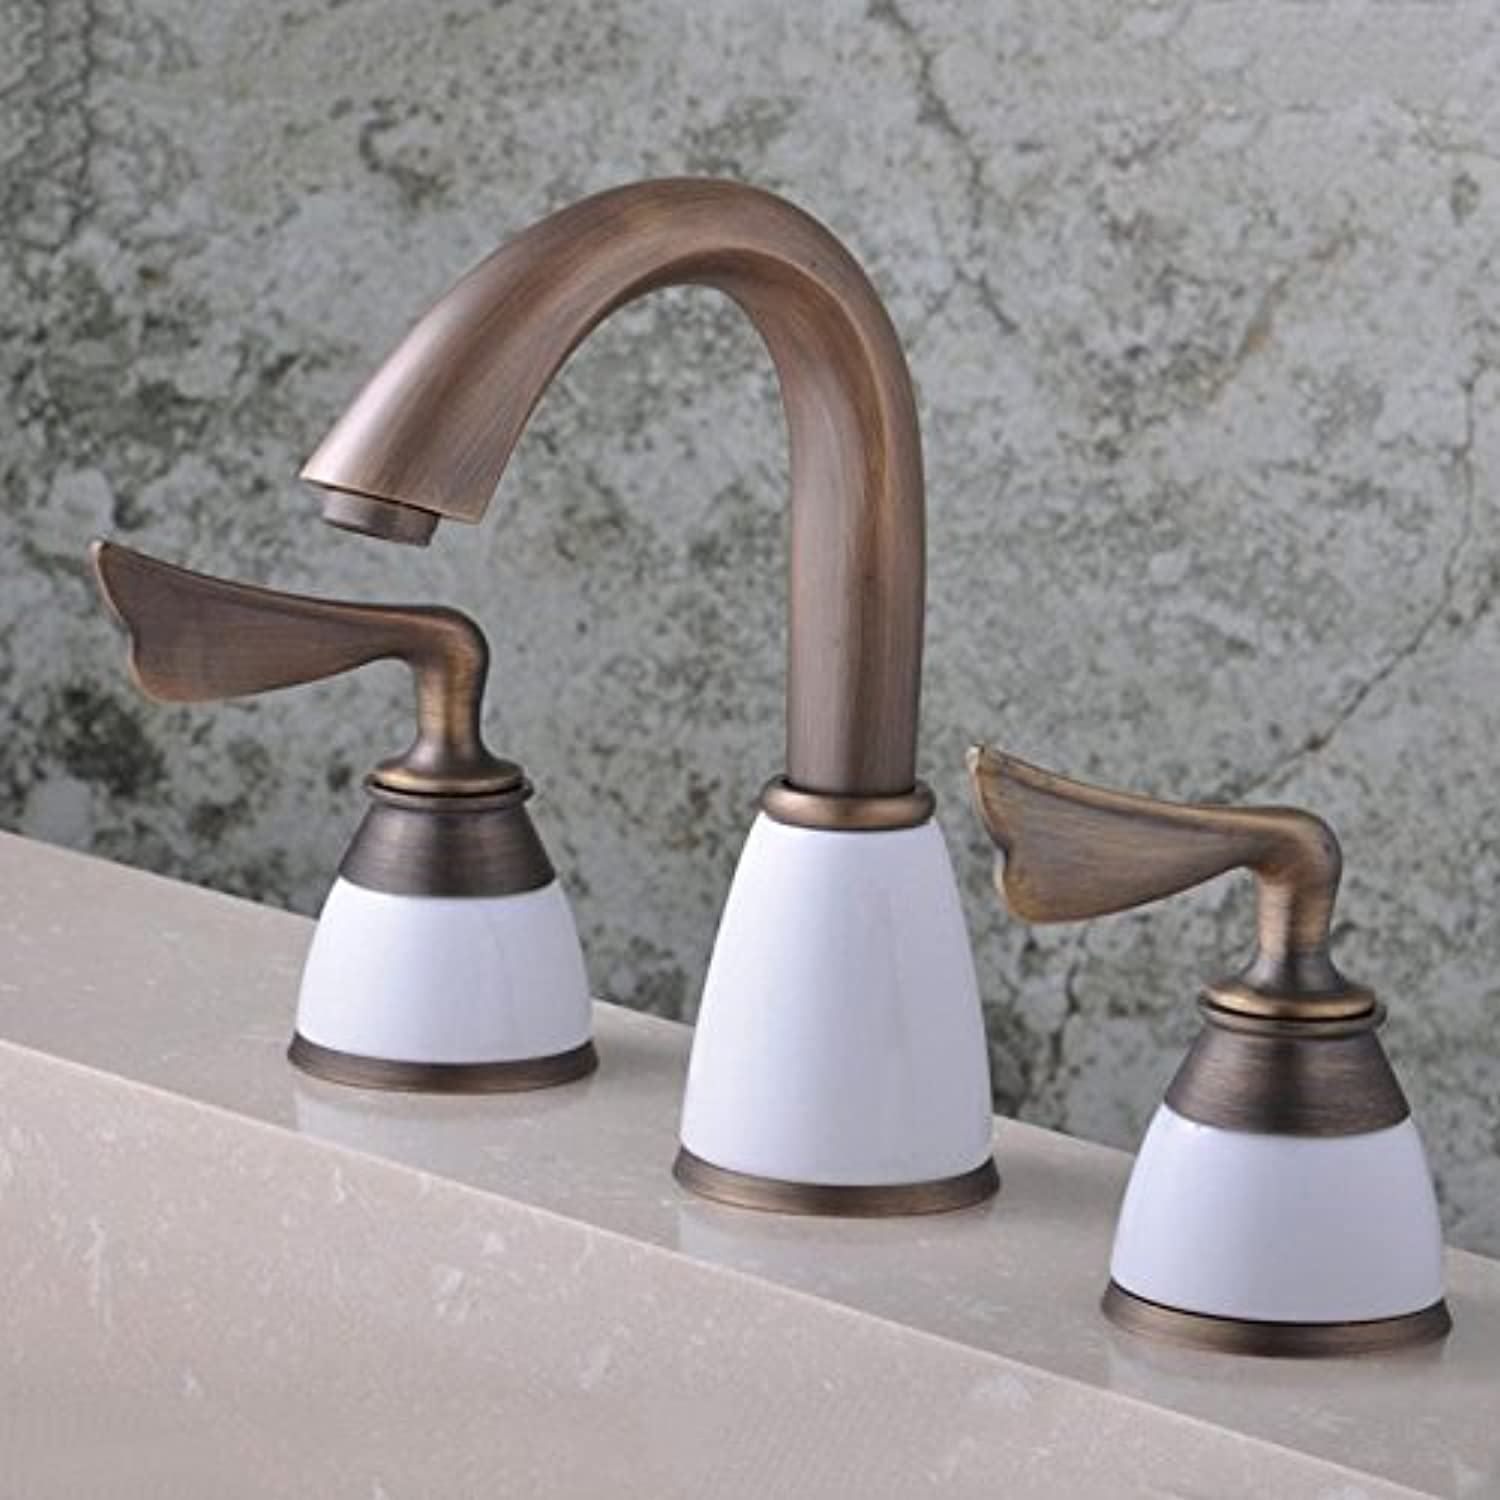 Bijjaladeva Antique Bathroom Sink Vessel Faucet Basin Mixer Tap The sink faucet and cold water tap 3 piece retro bath into the wall tap water heating mixing faucet kit